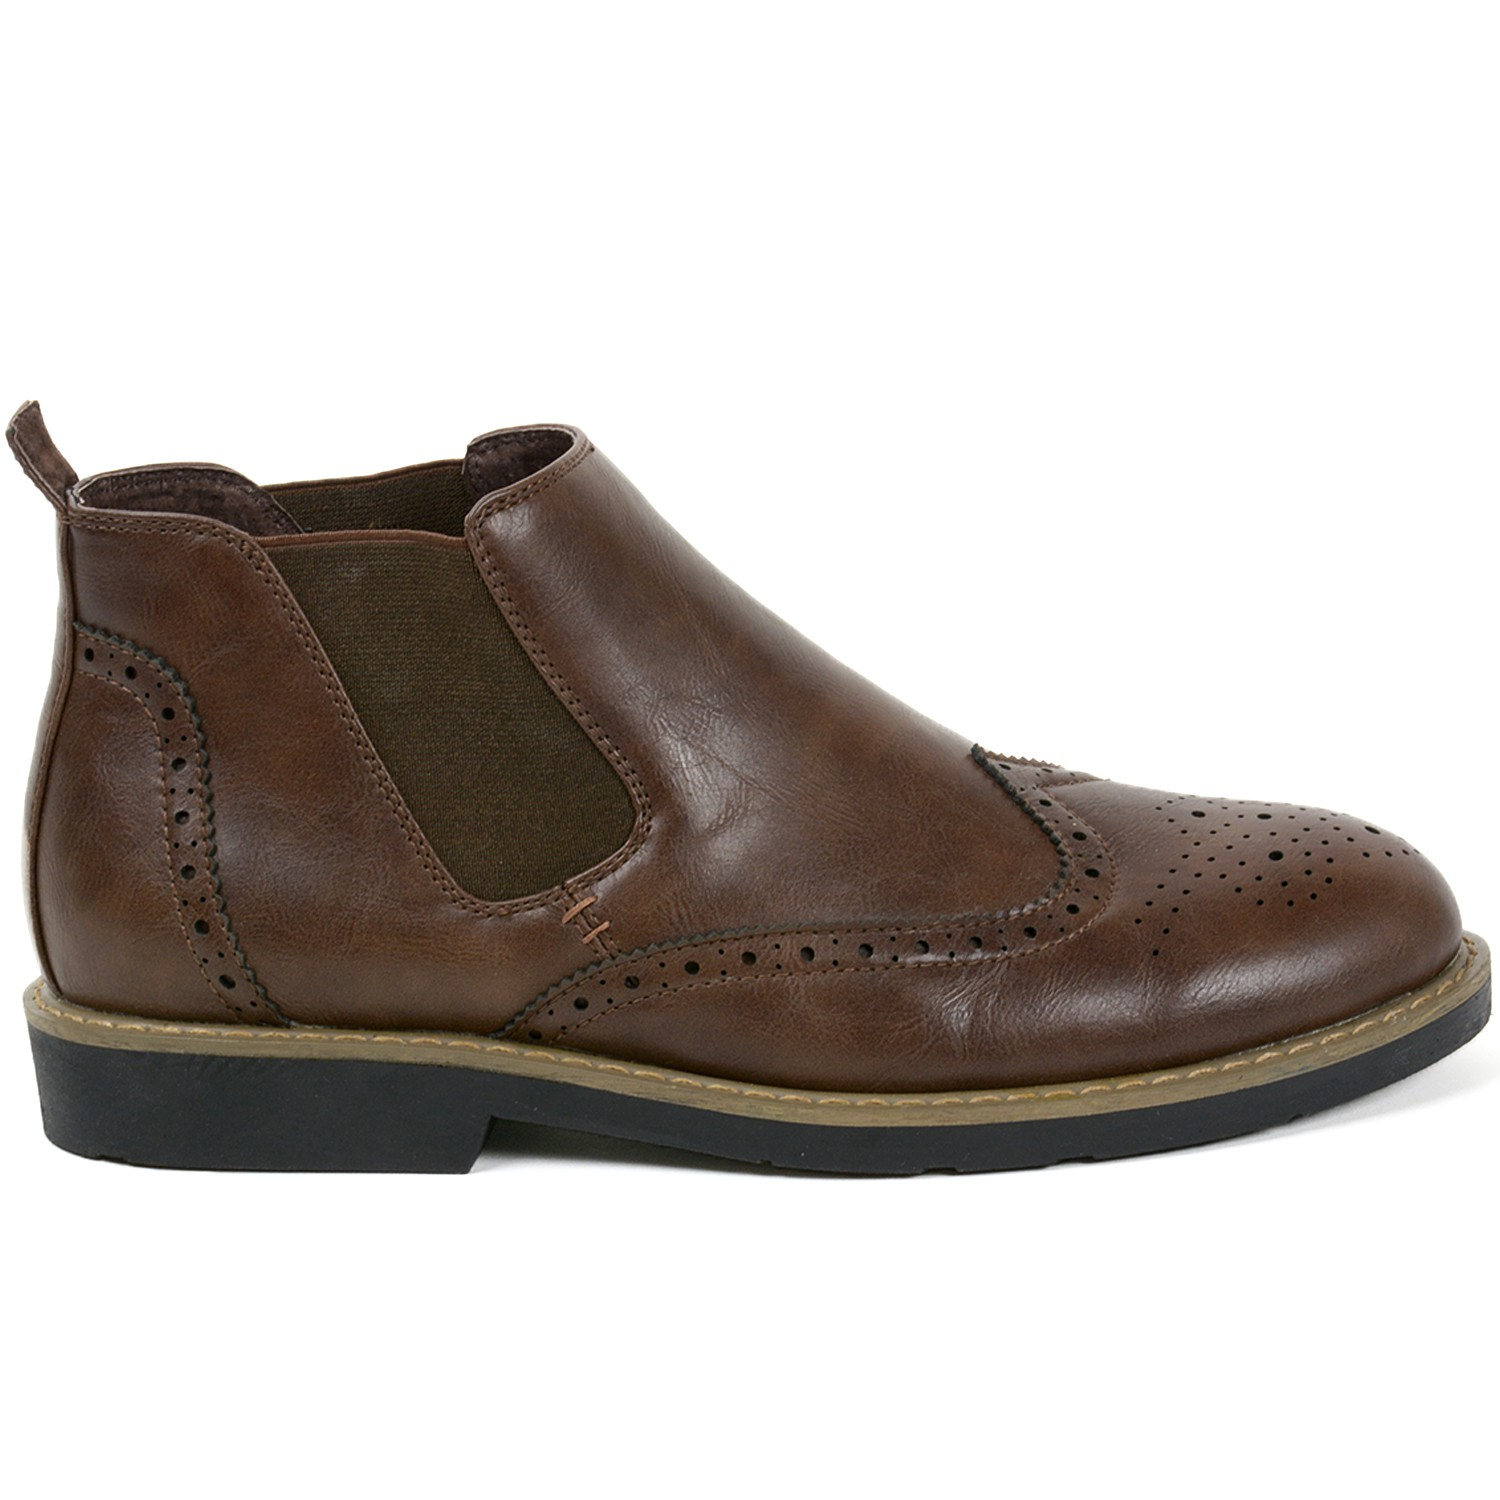 brogue men Wingtips and jeans can look just as good as the quarter brogue style when wearing men's fashion shoes with jeans how to wear men's brogues brogues are a.